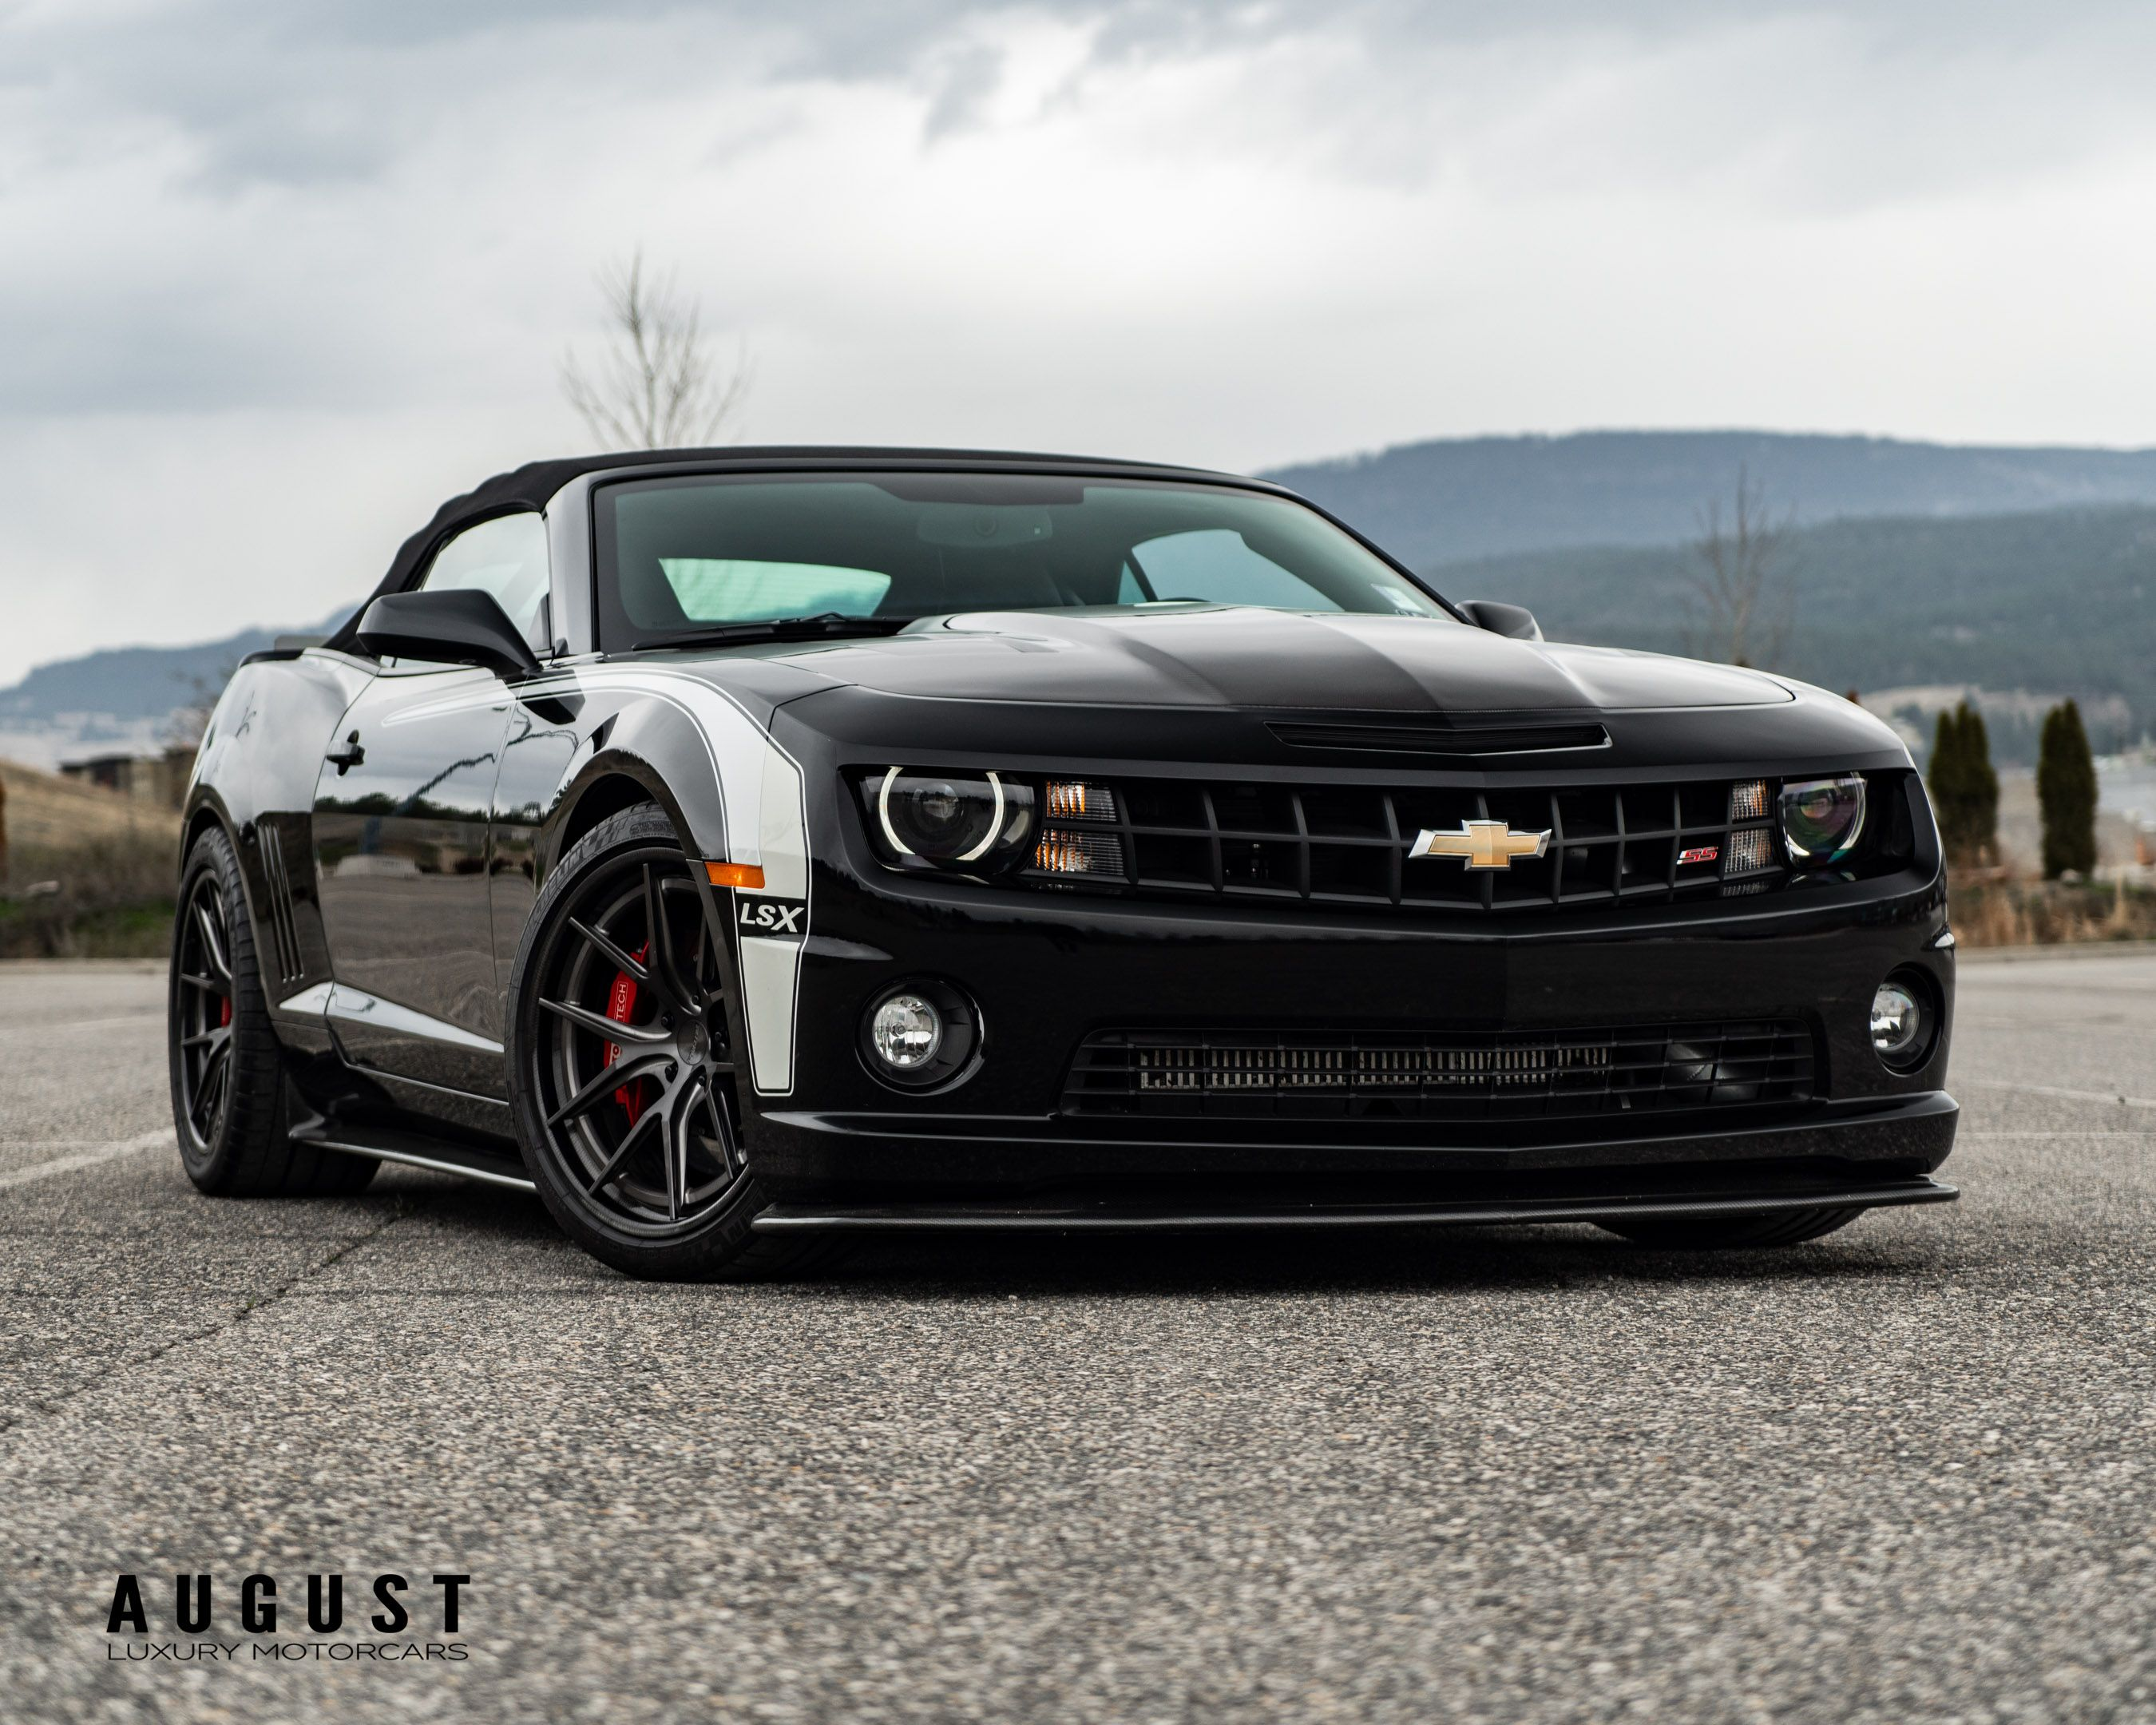 Pre-Owned 2011 Chevrolet Camaro 2SS Convertible Hennessey HPE1000 Twin Turbo 1000HP